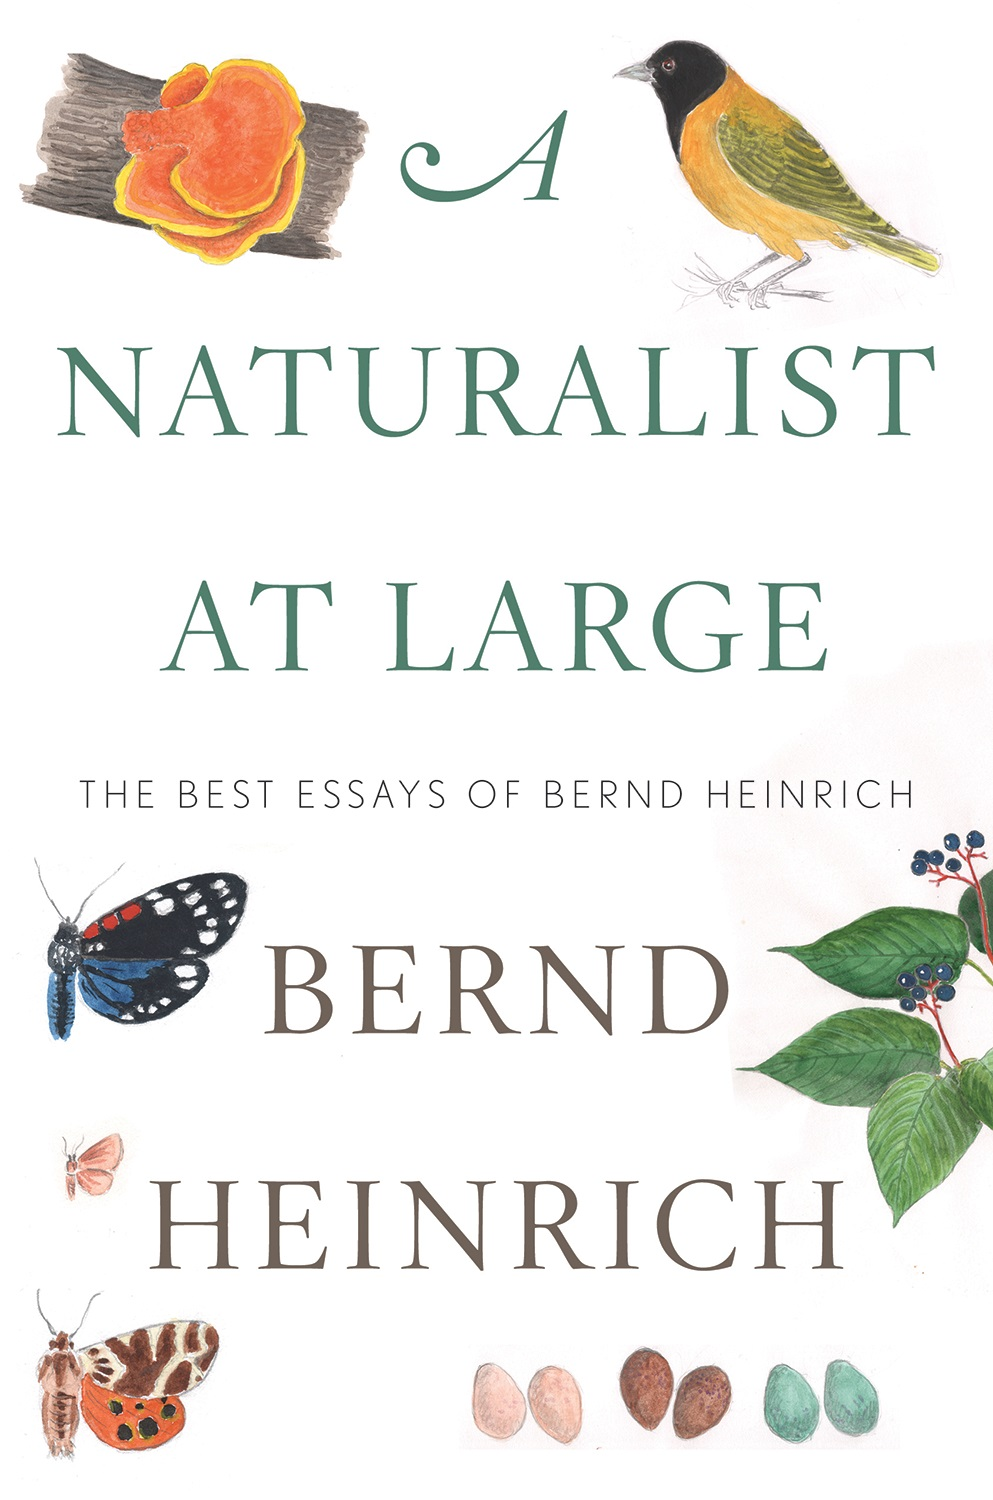 A Naturalist at Large: The Best Essays of Bernd Heinrich  by Bernd Heinrich  (Houghton Mifflin Harcourt)   READ MORE